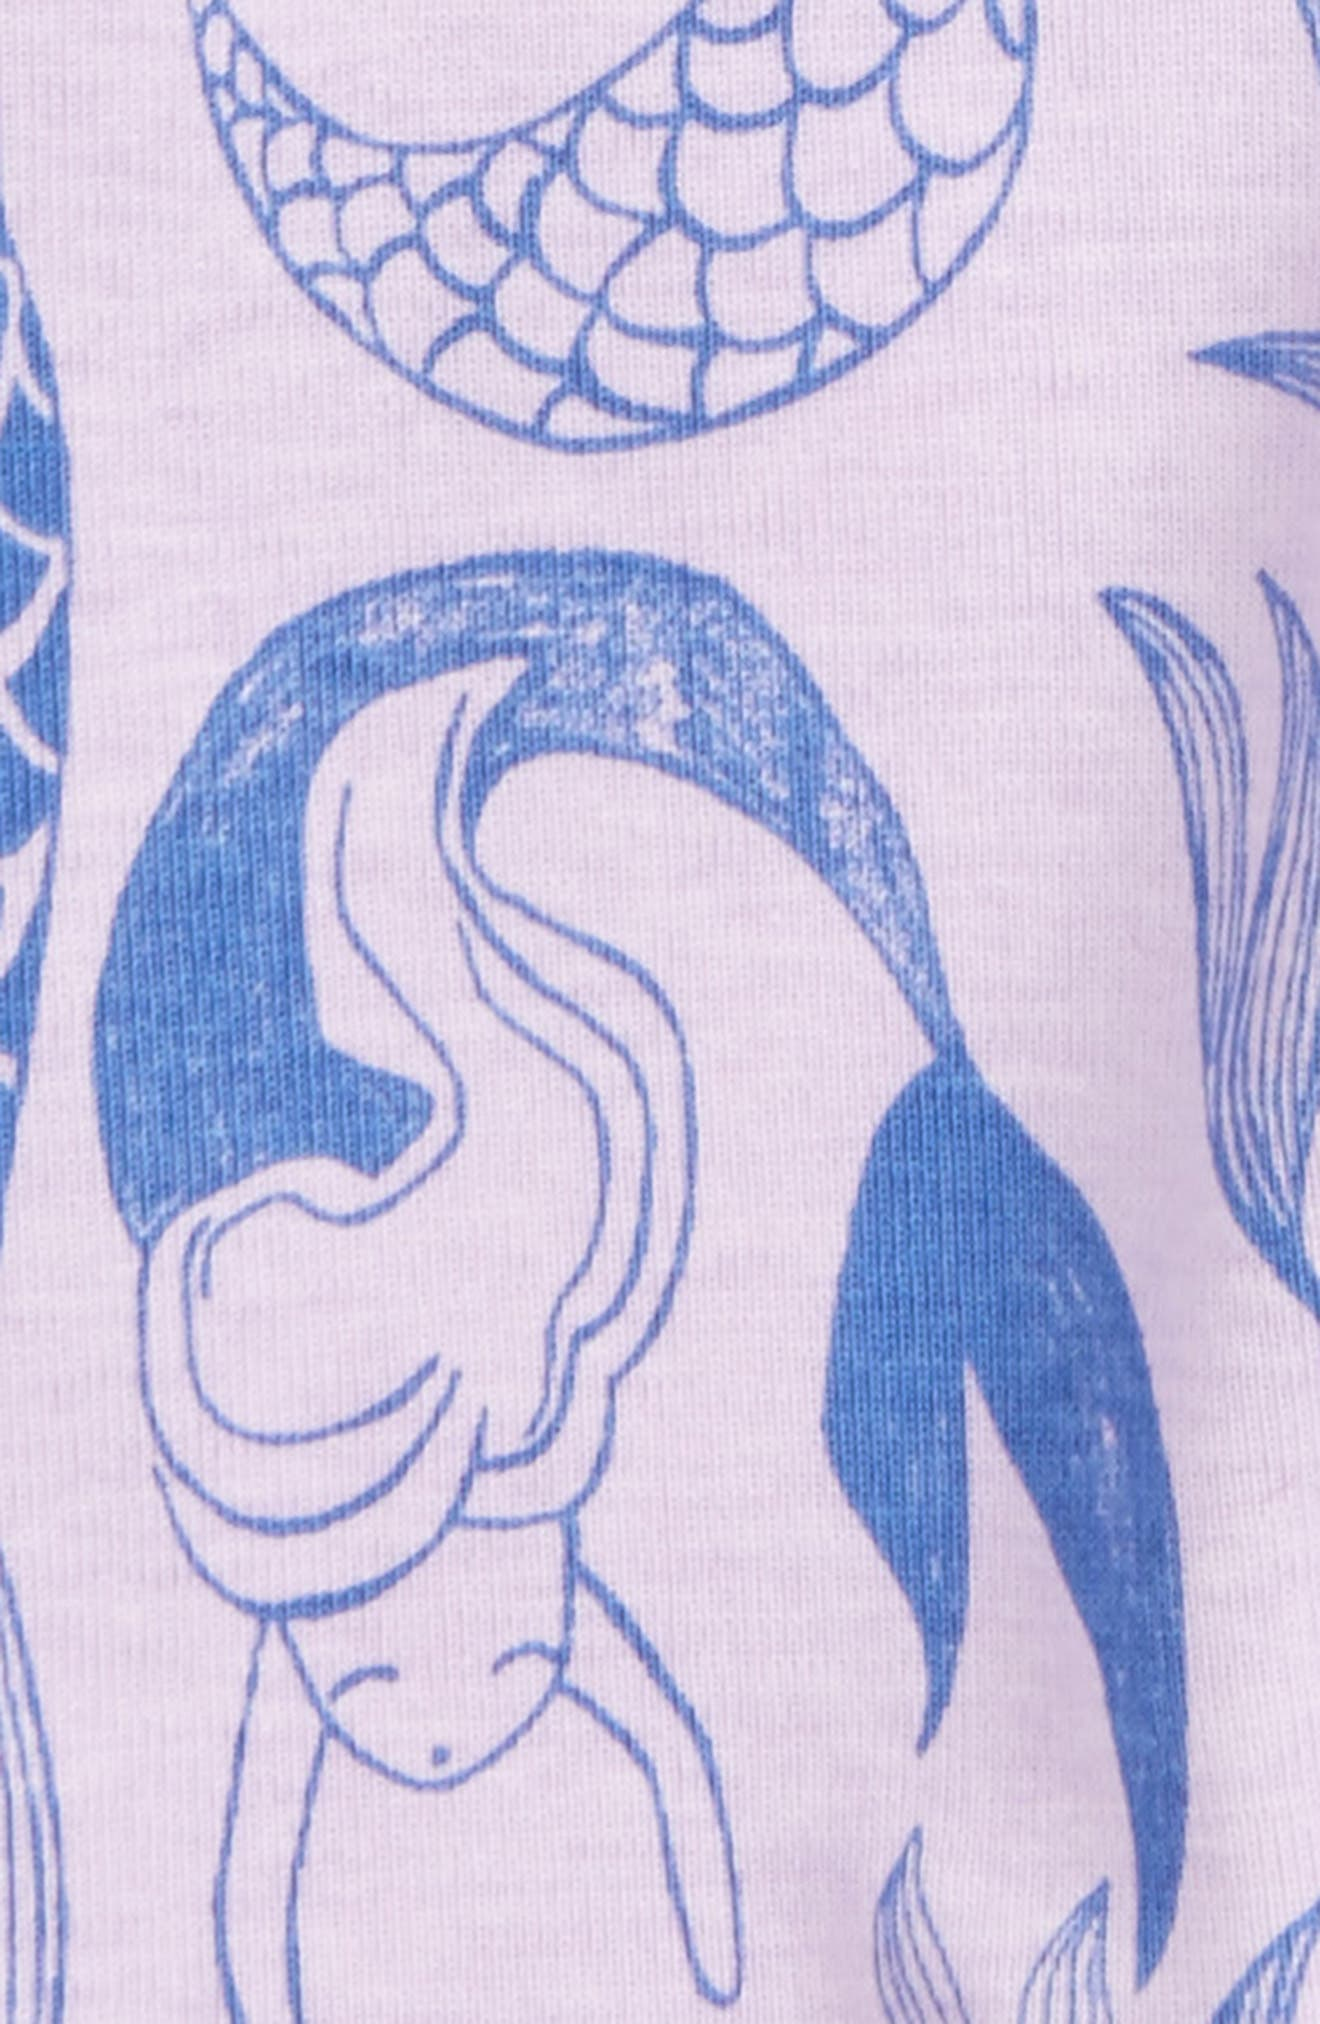 Short Sleeve Fitted One-Piece Pajamas,                             Alternate thumbnail 2, color,                             Mermaids